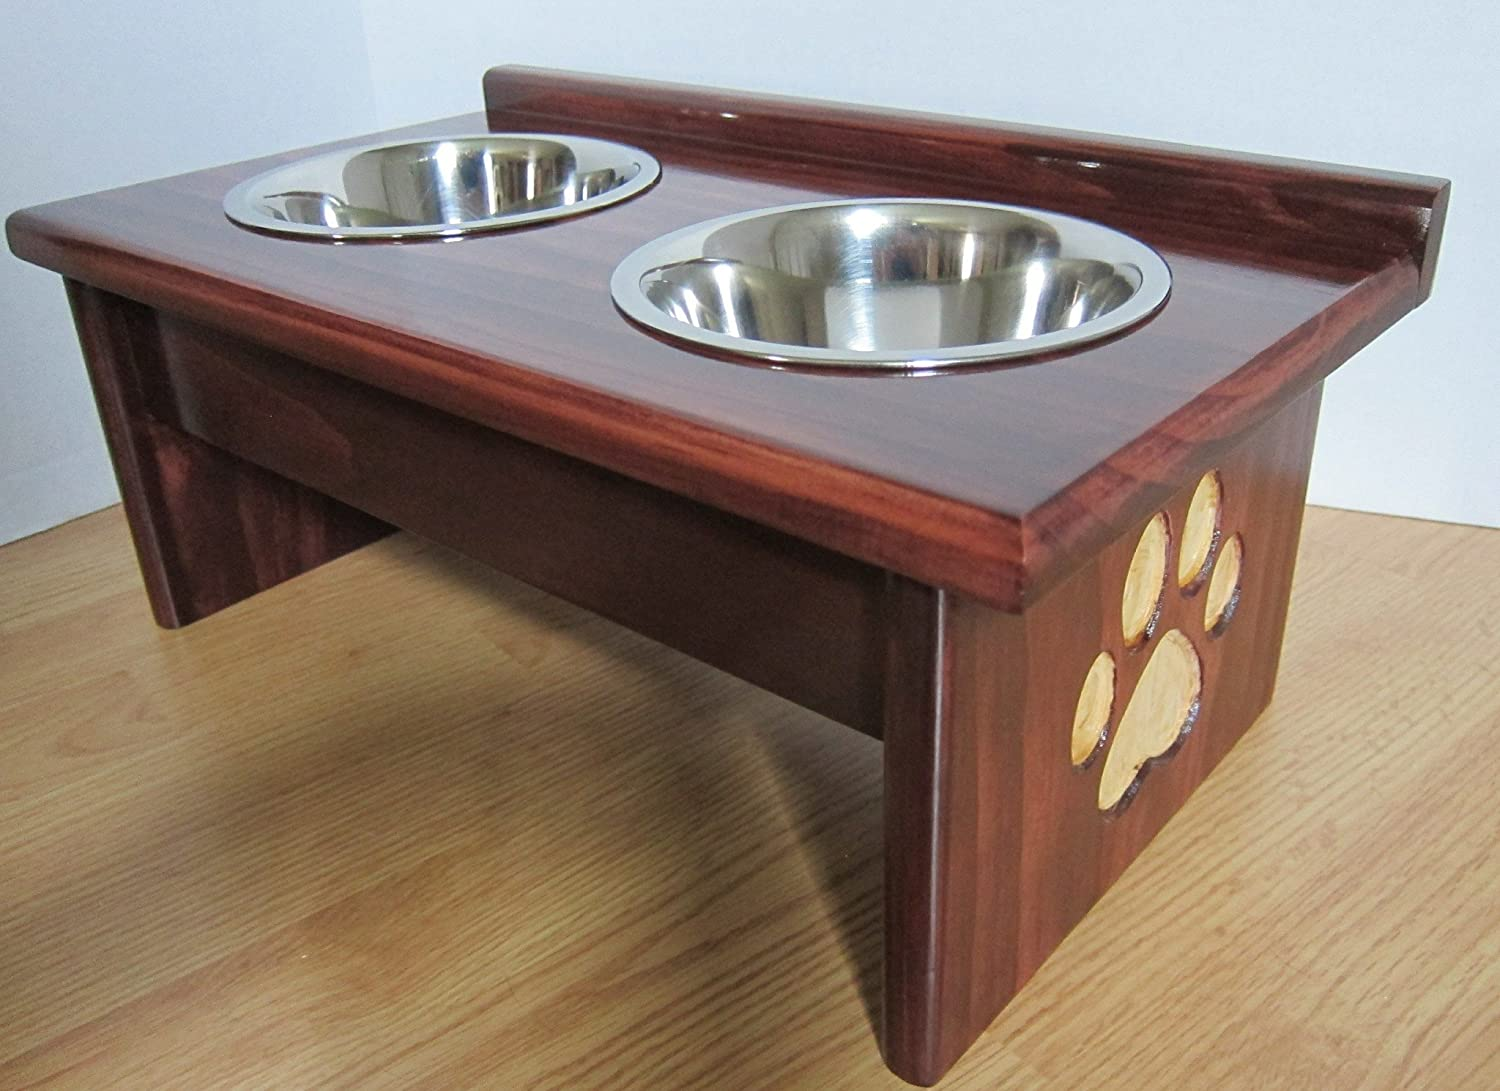 Paw Print Carved Leg Elevated Food Dish Holder - XSmall